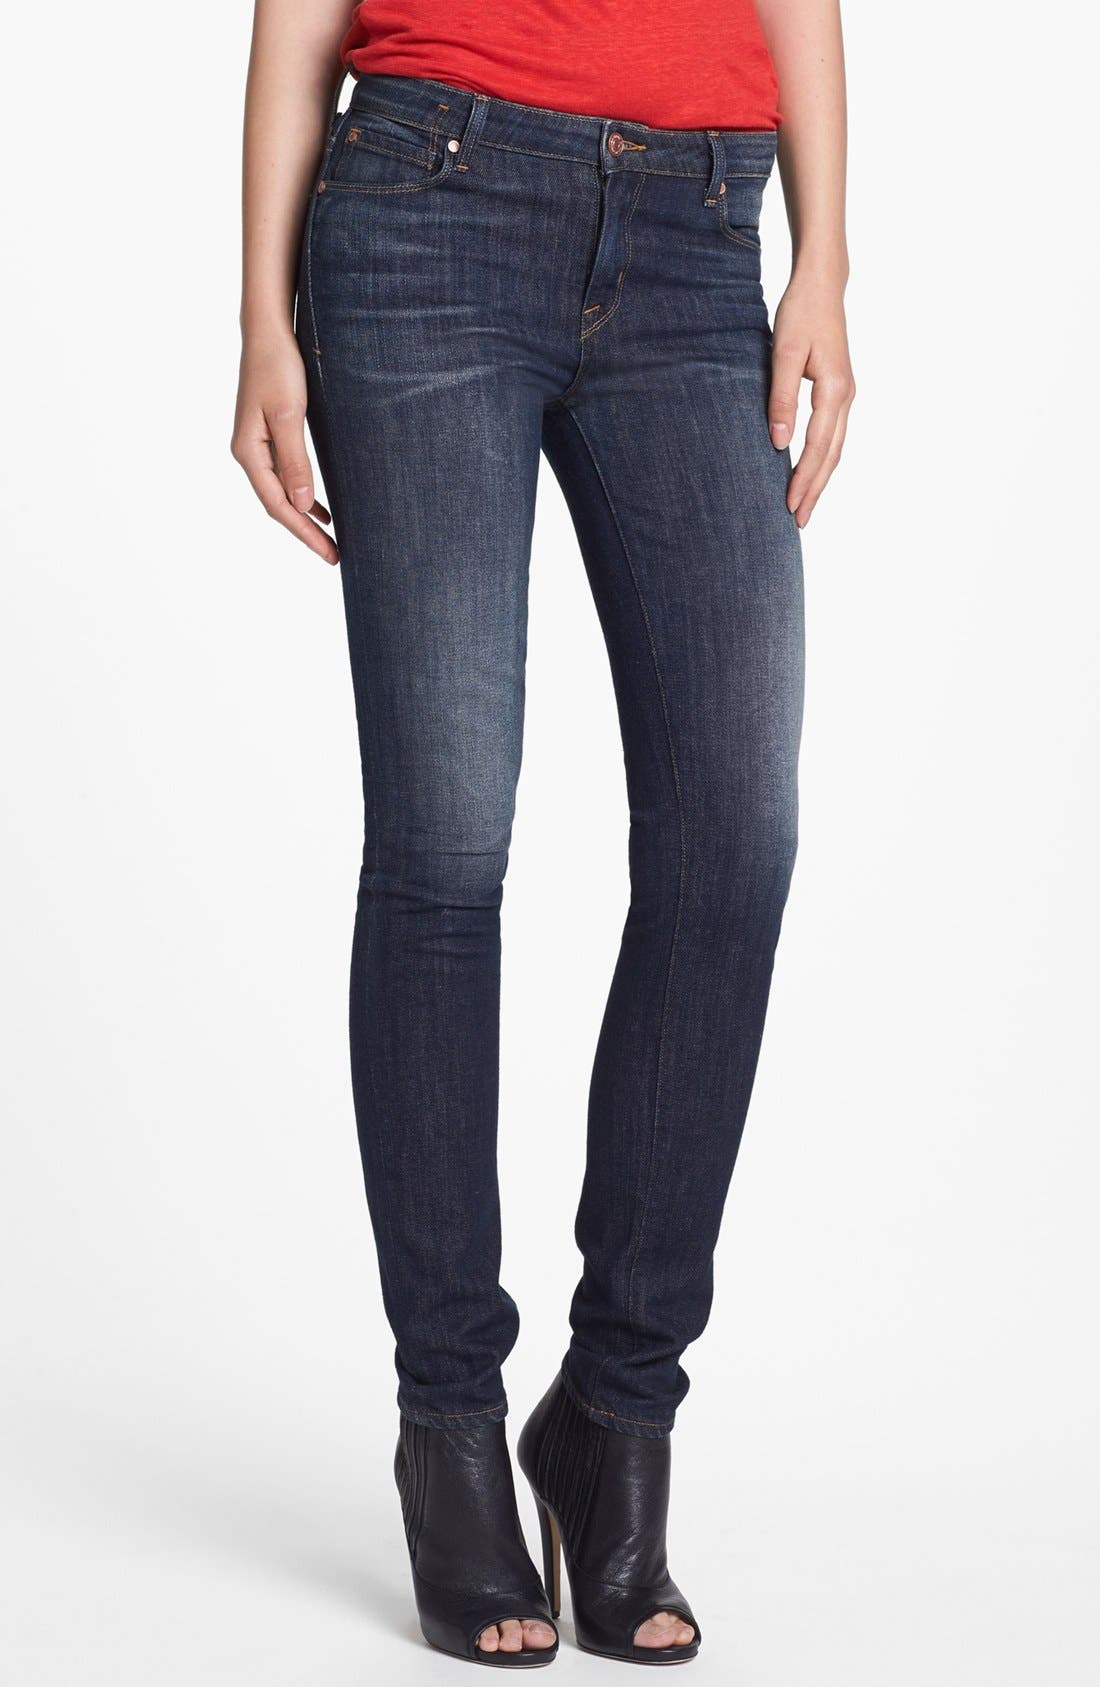 Alternate Image 1 Selected - MARC BY MARC JACOBS 'Gaia' Super Skinny Jeans